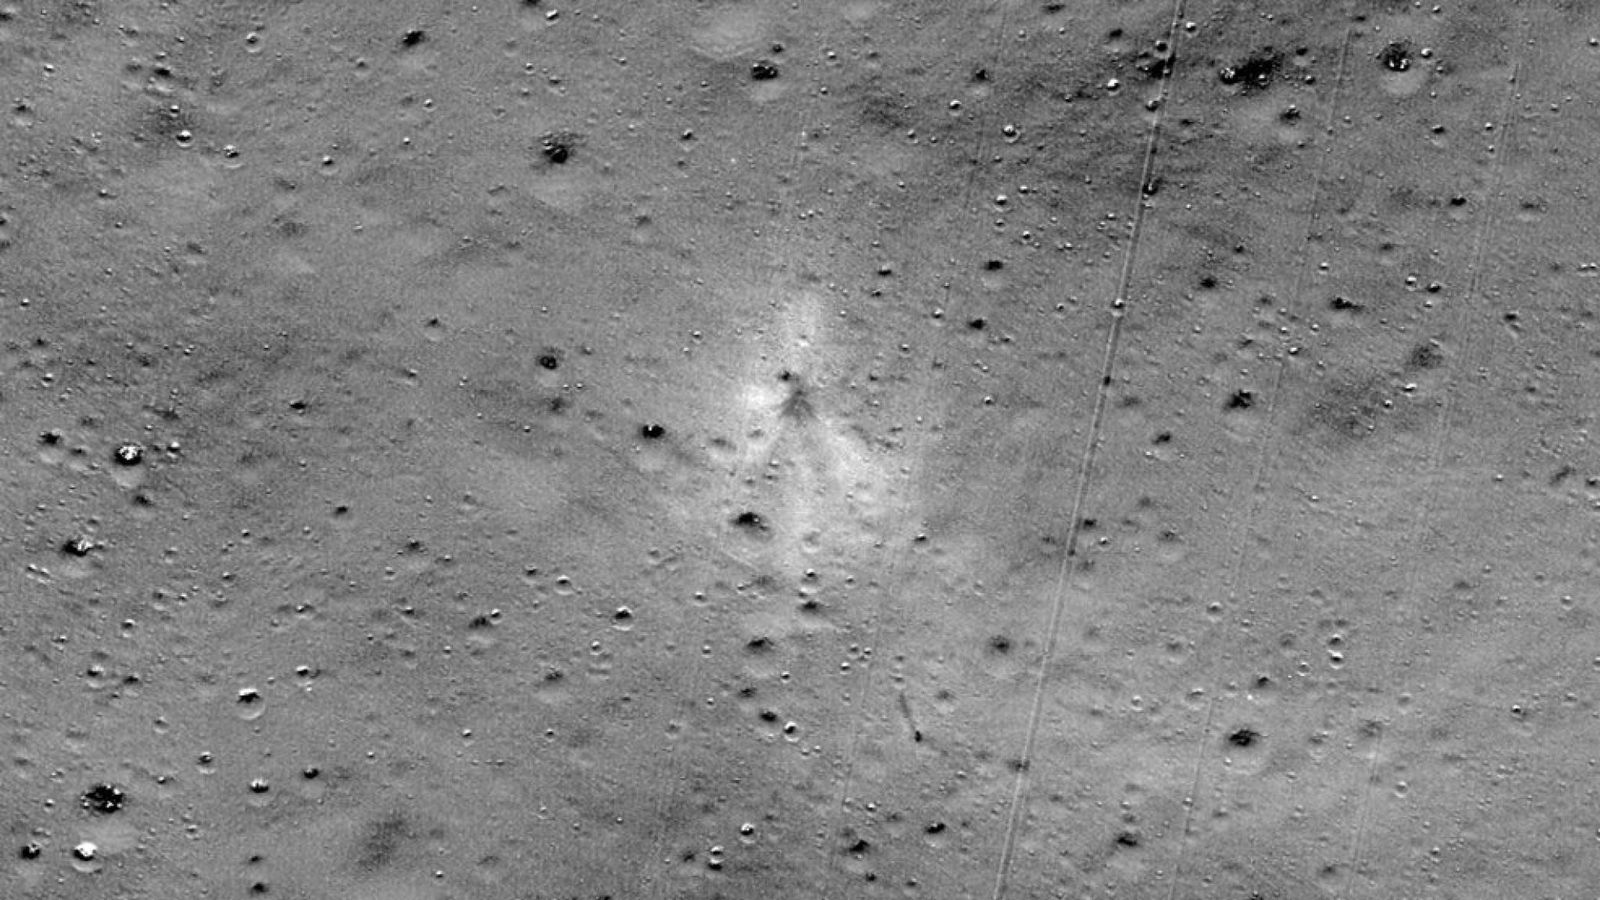 NASA Finds Lost Indian Spacecraft With Help From Amateur Astronomer